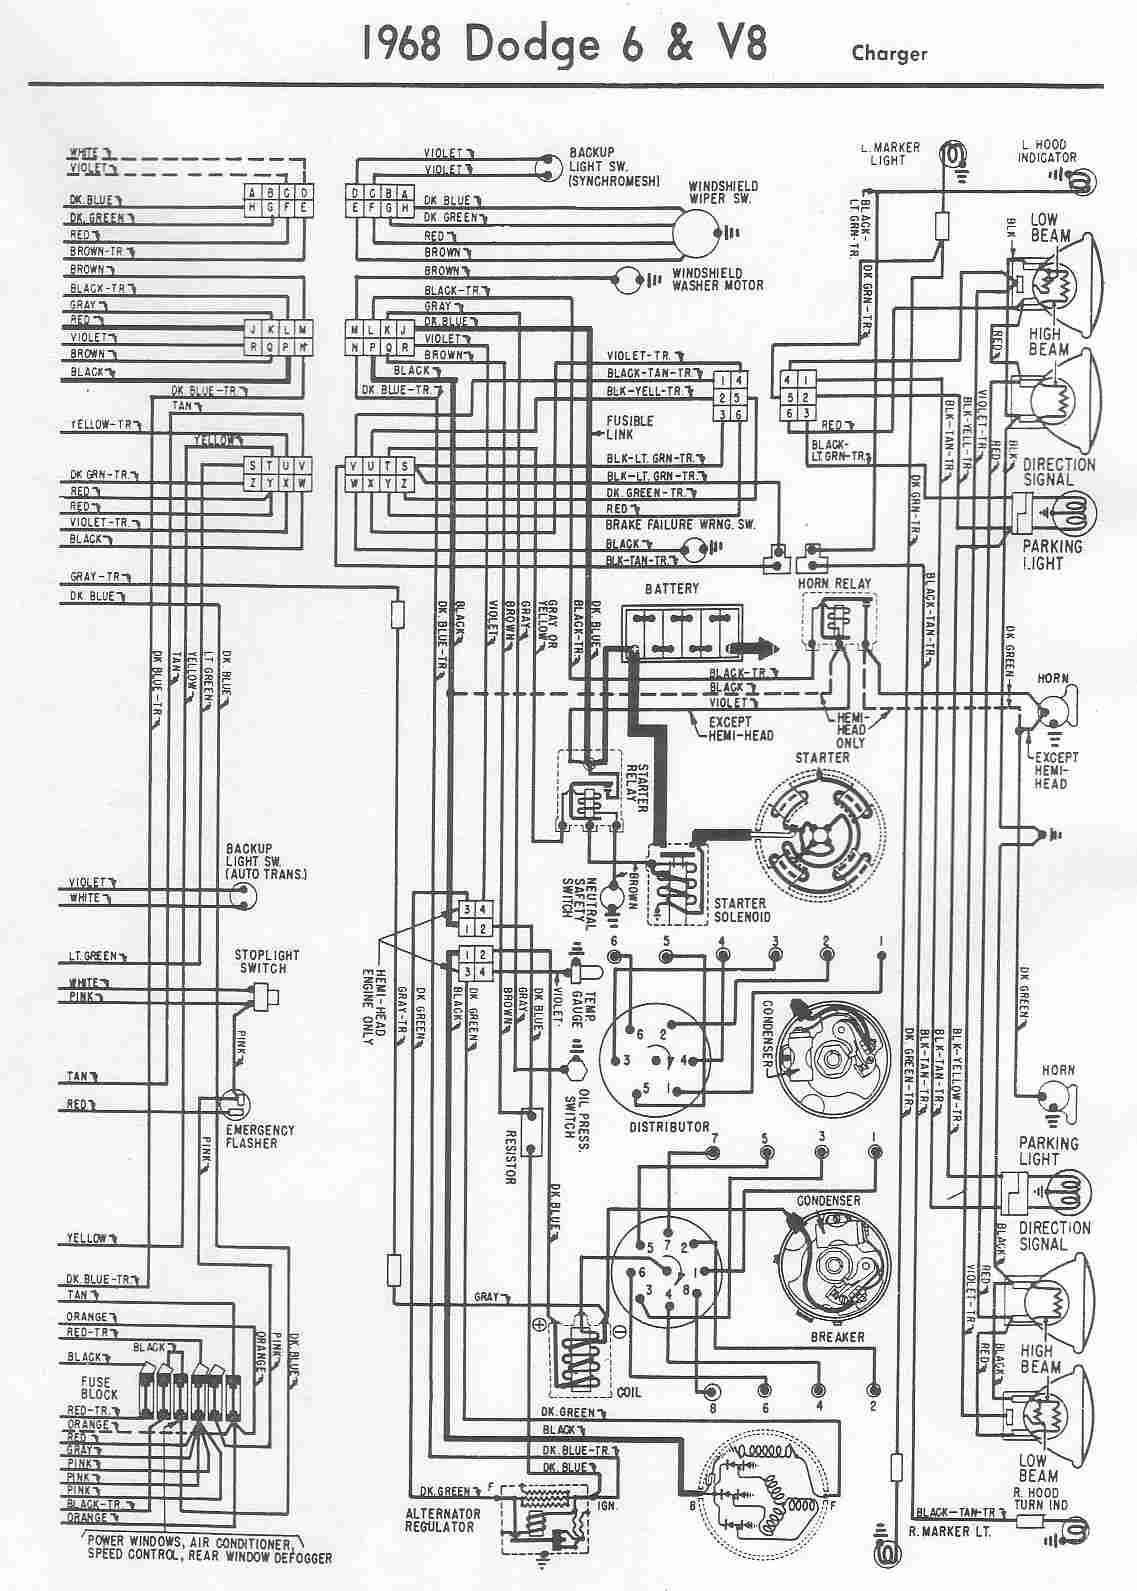 charger electrical wiring diagram of 1968 dodge 6 and v8?t=1508404771 dodge car manuals, wiring diagrams pdf & fault codes Multi Speed Blower Motor Wiring at aneh.co